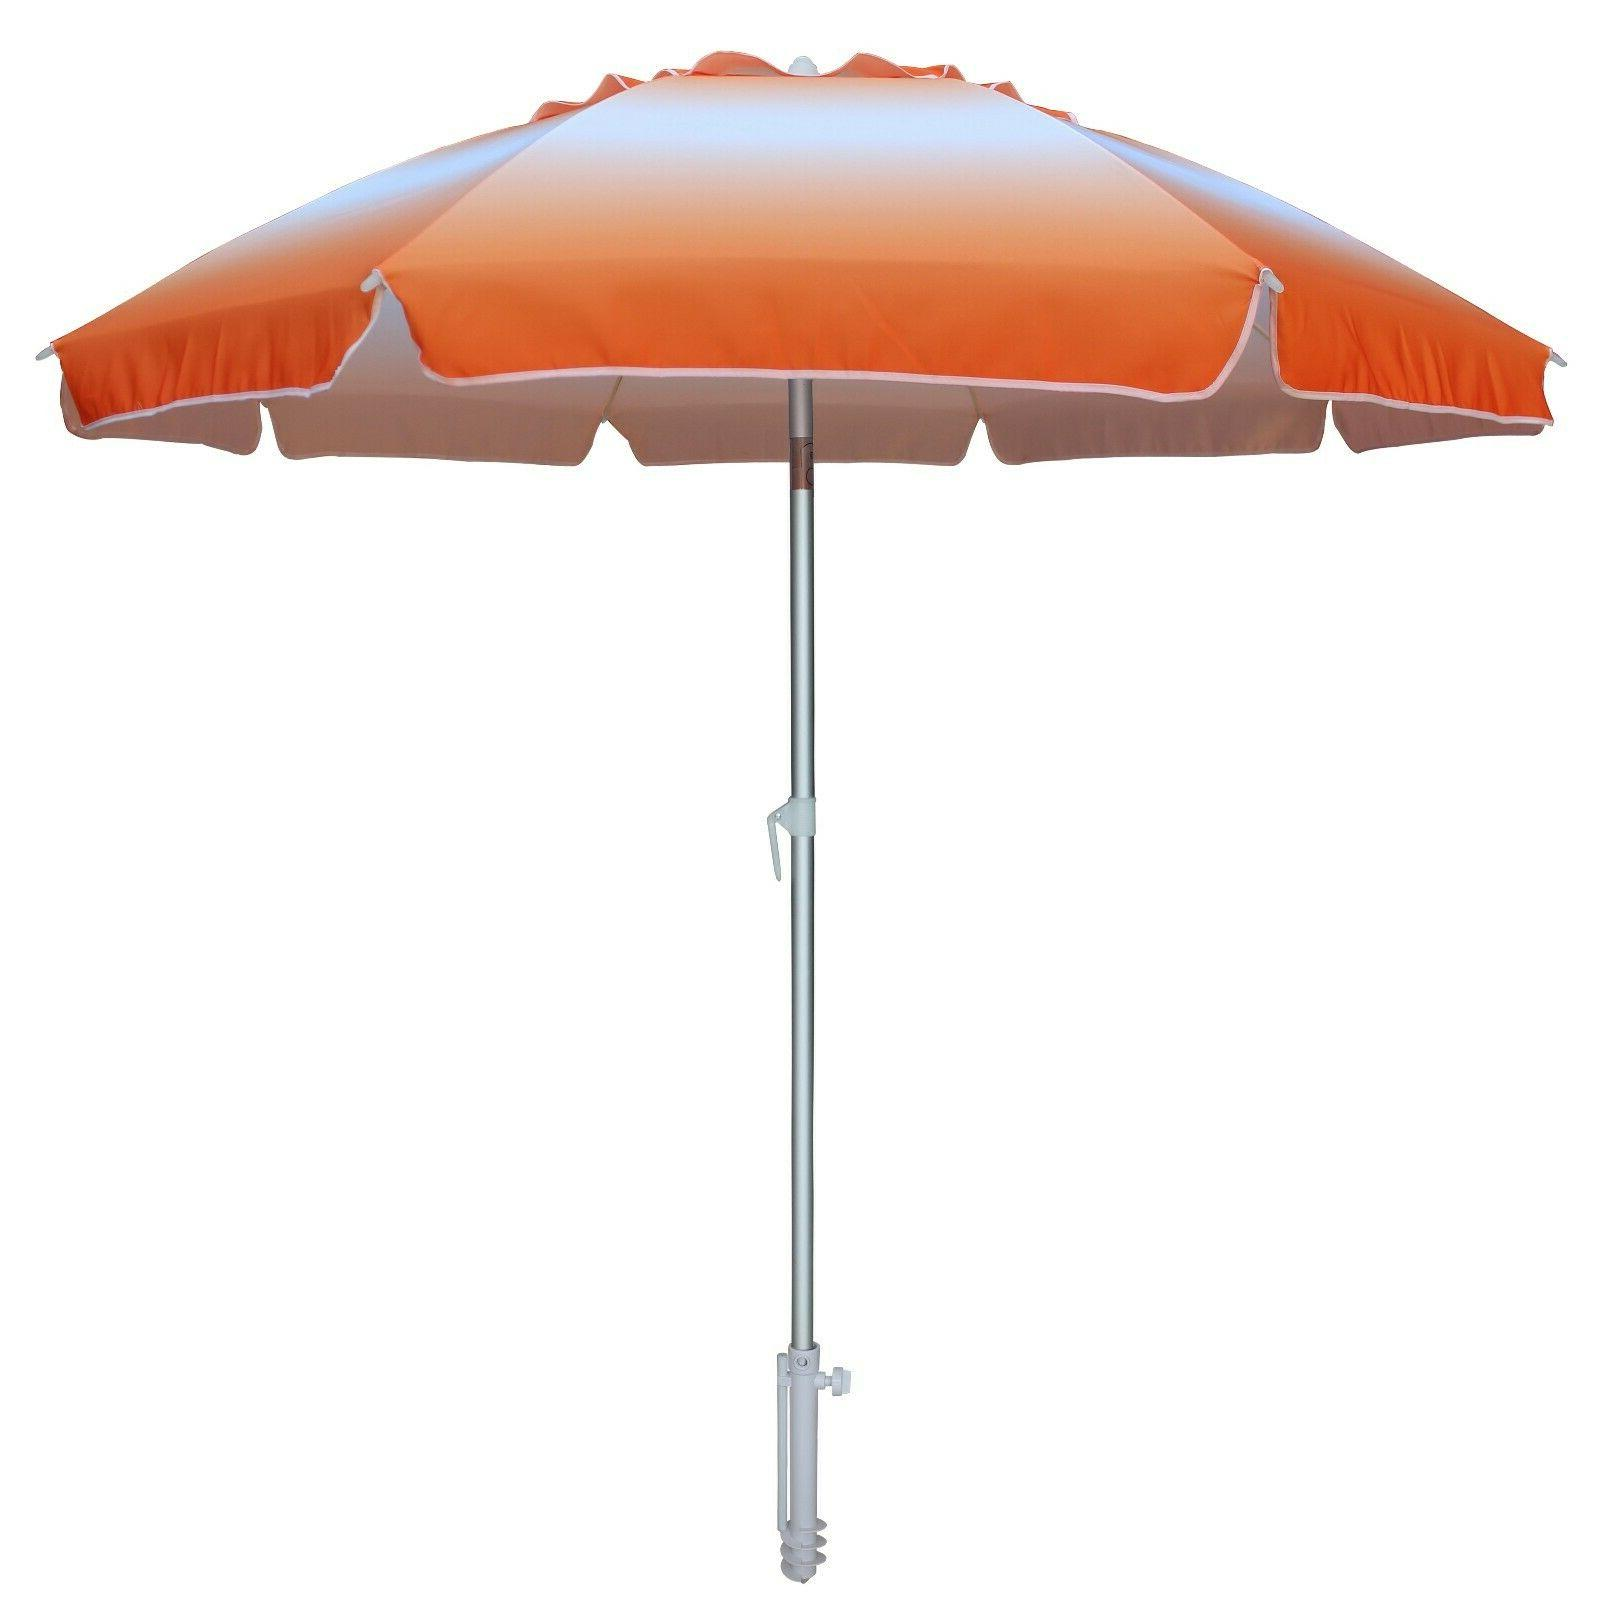 AMMSUN 6.5 ft Umbrella Protection,Separate Sand Anchor